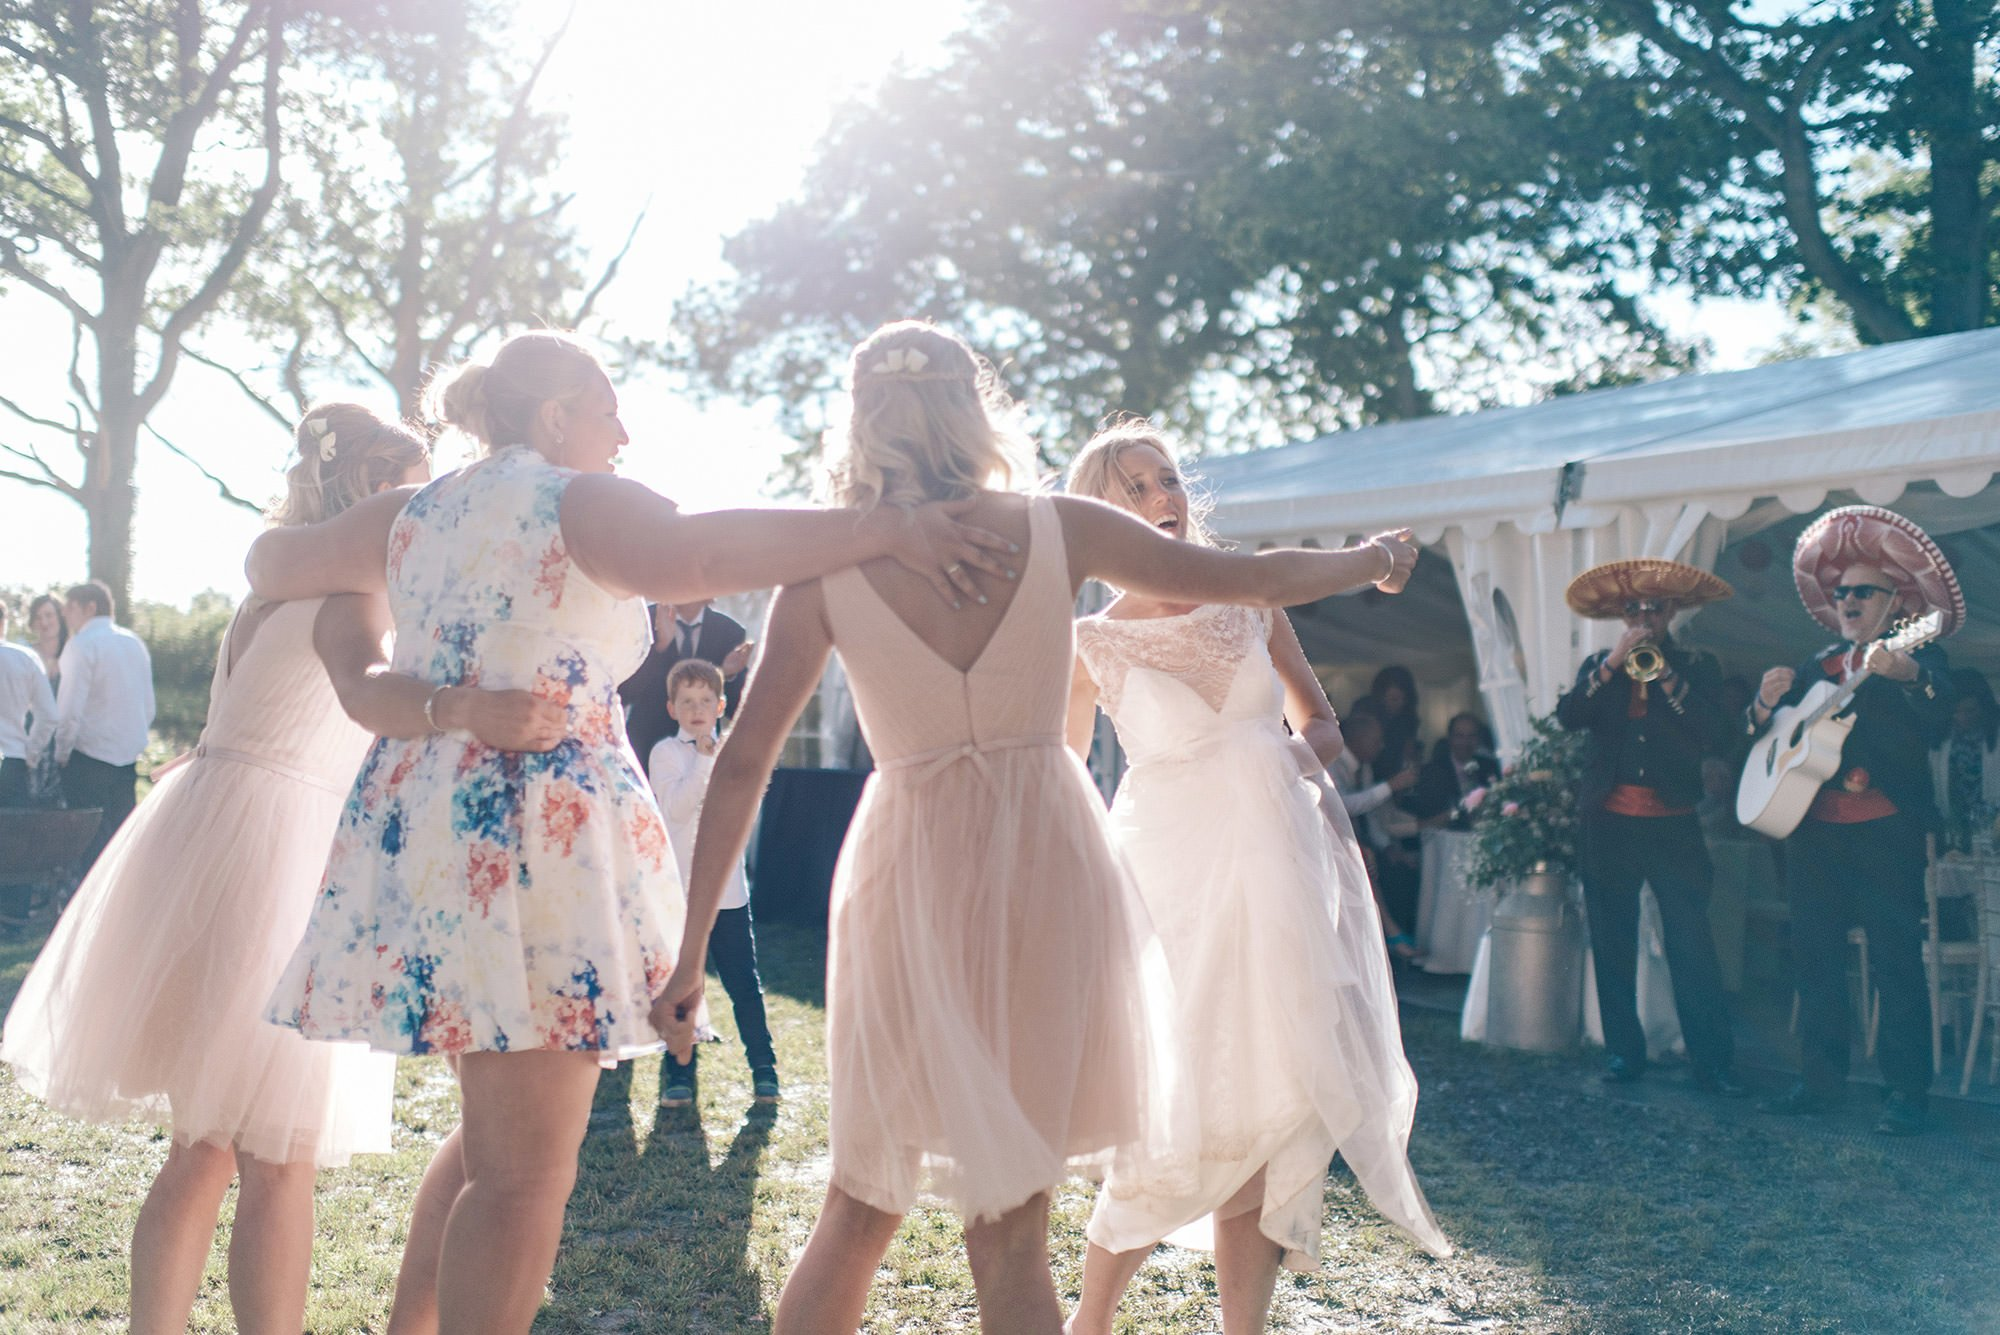 bride and her bridesmaids dancing in the mud